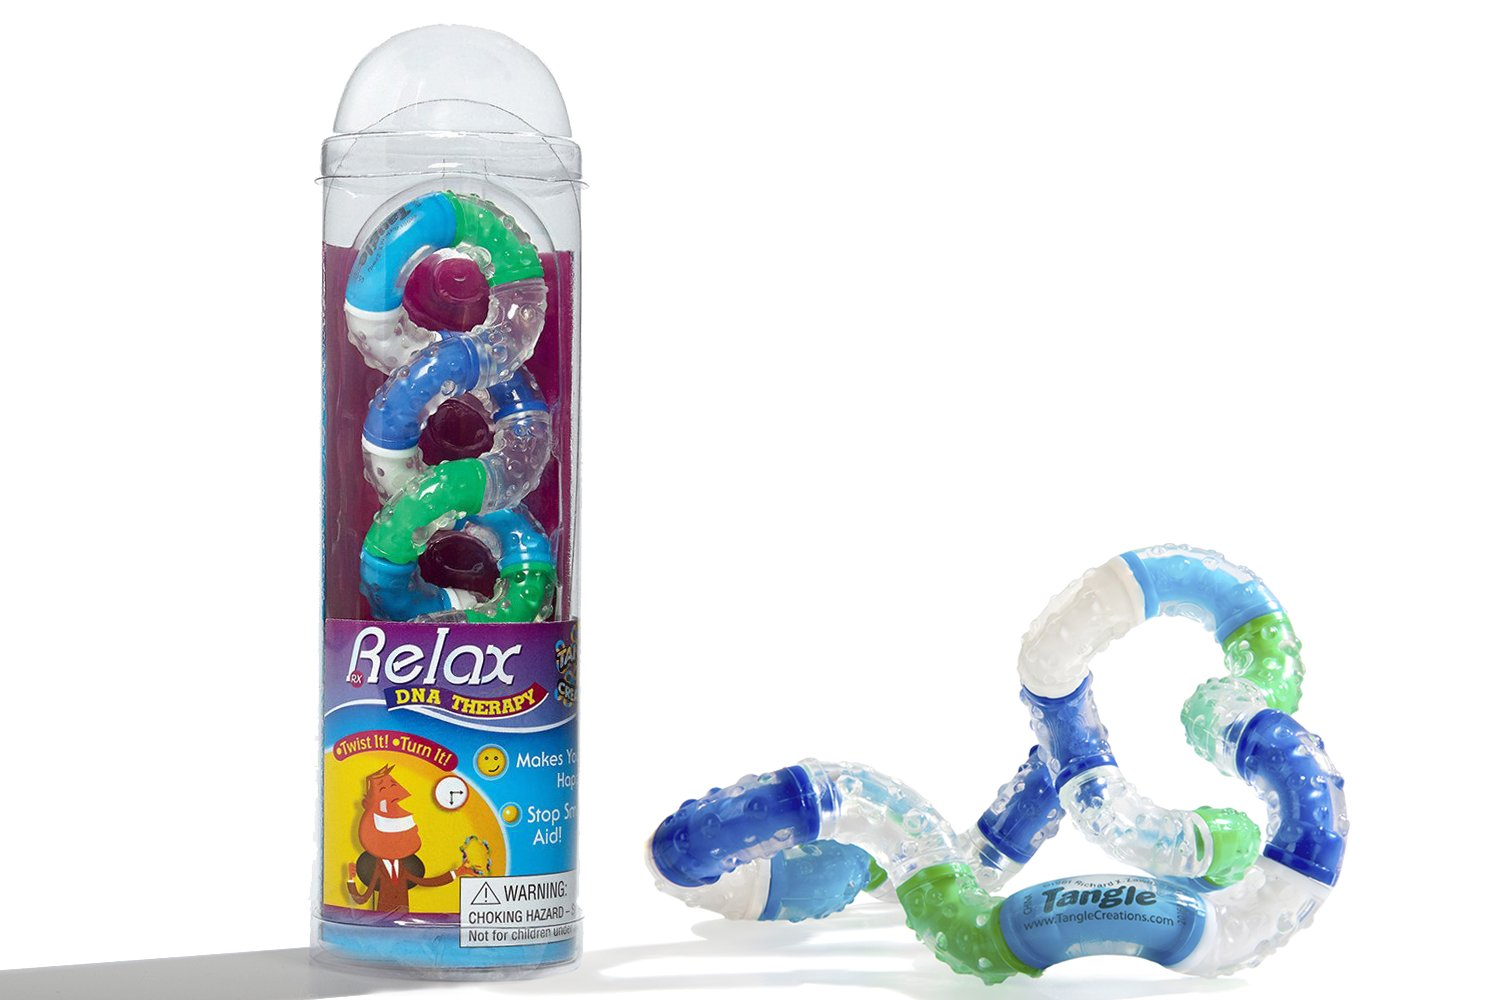 Tangle Therapy Relax for Hand and Mind Wellness (color may vary) by Tangle (Image #1)